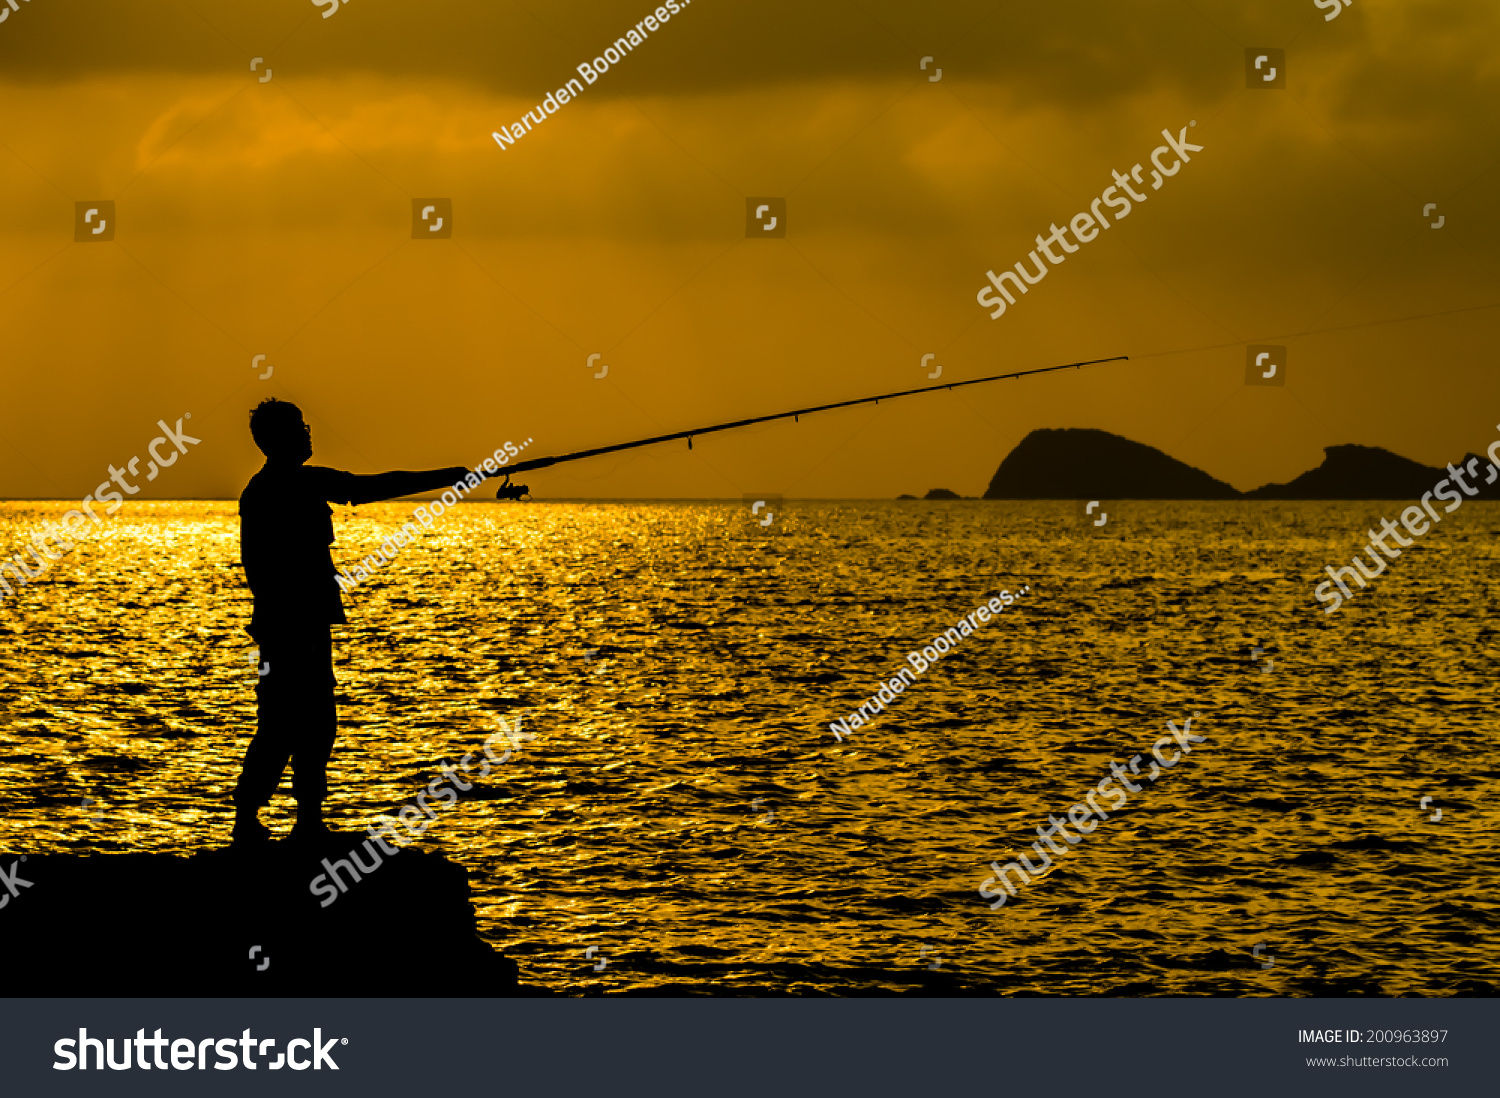 Silhouette man fishing near sea stock photo 200963897 for Where to get a fishing license near me